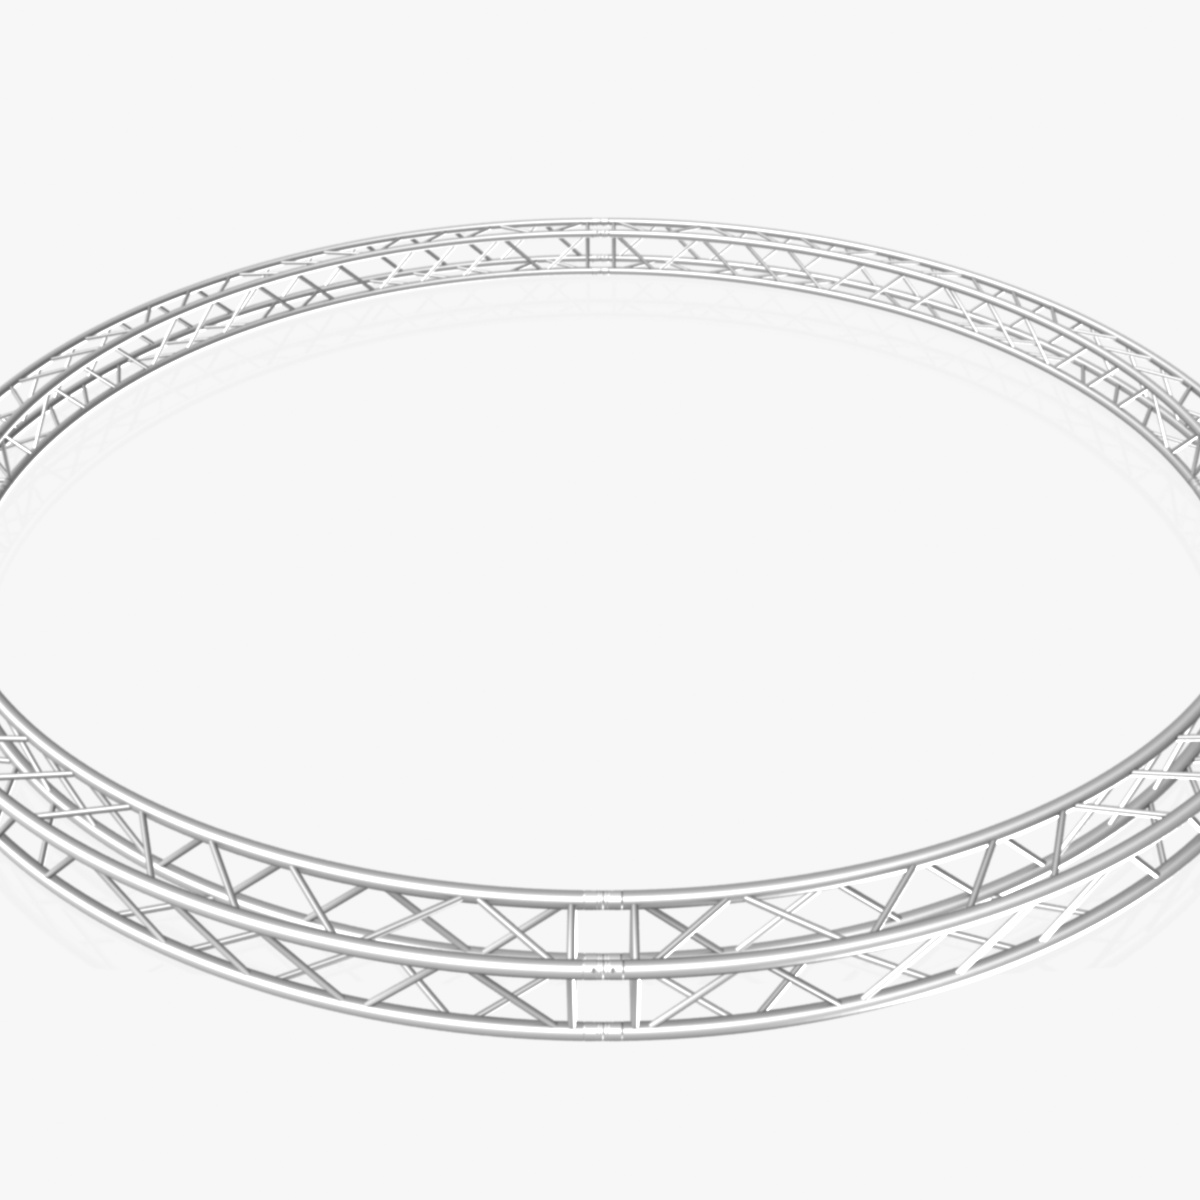 circle square truss (full diameter 600cm) 3d model 3ds max dxf fbx c4d dae  obj 253095